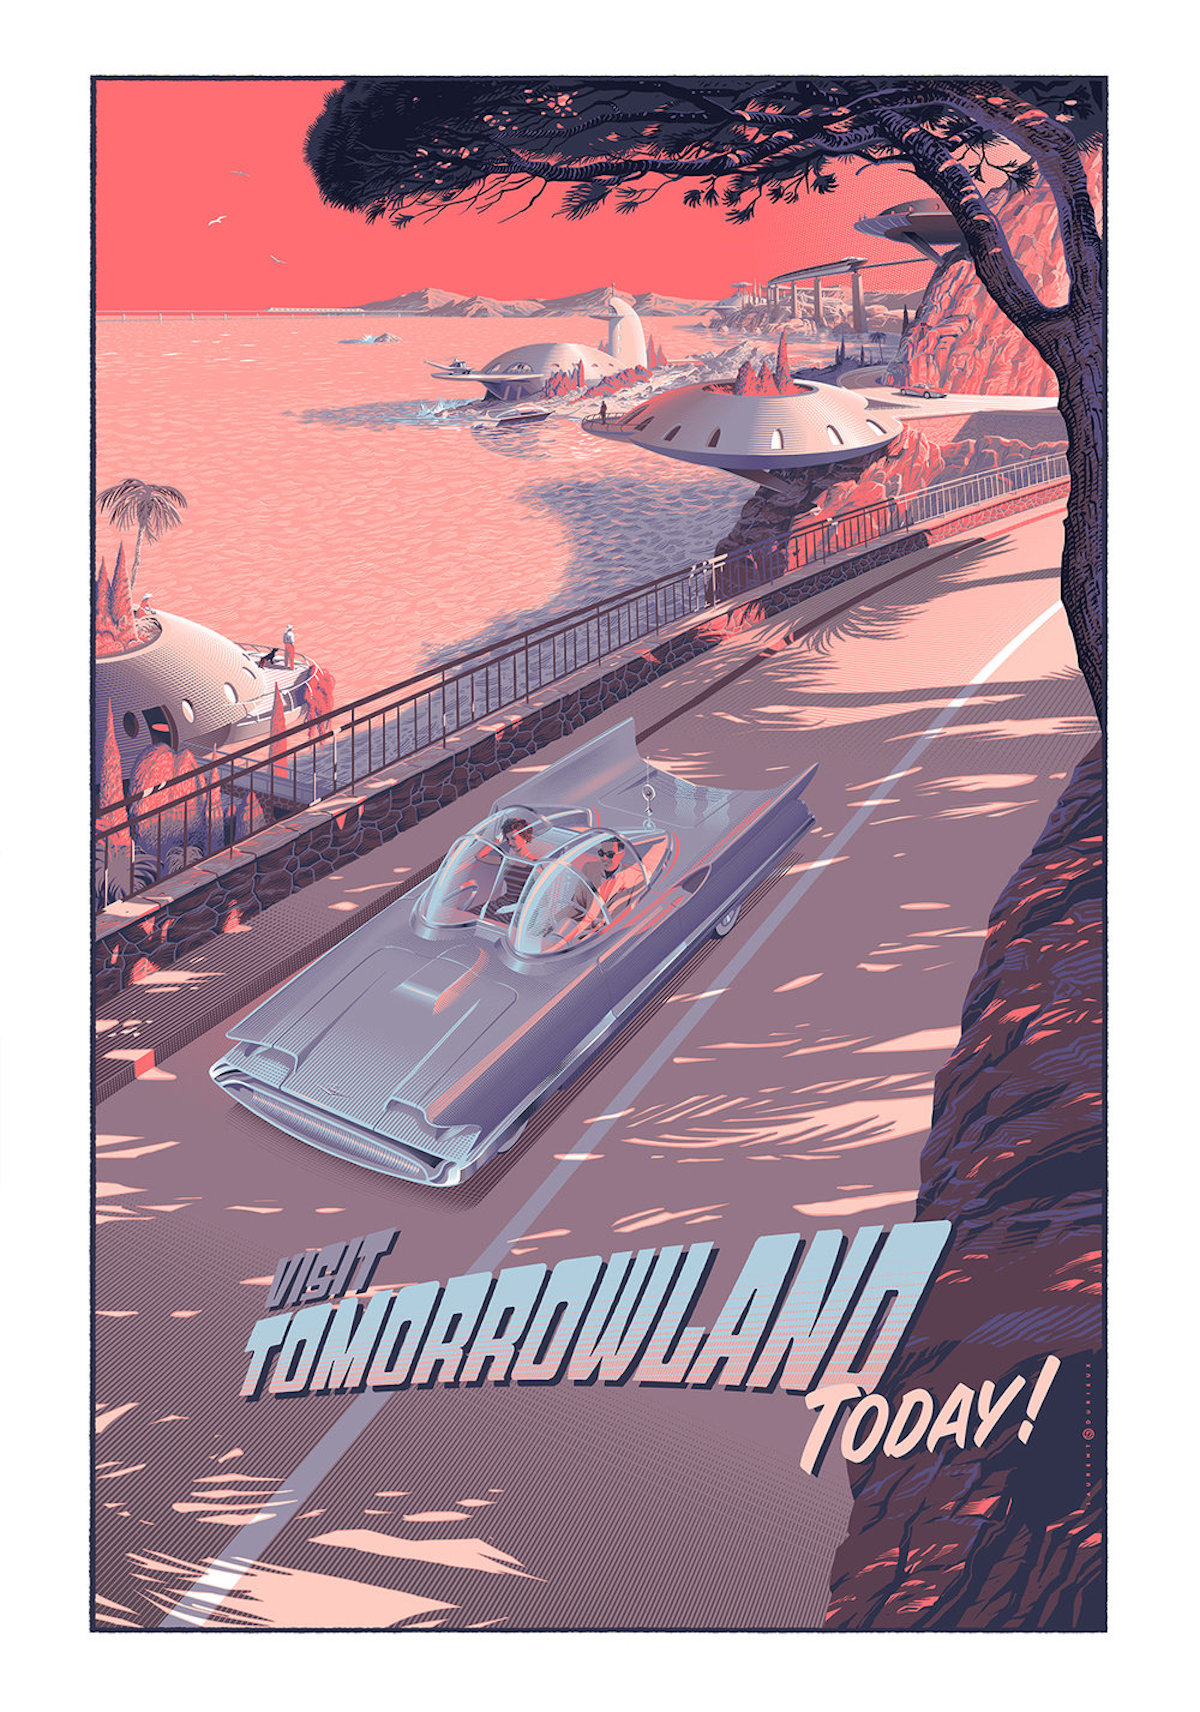 Tomorrowland Retro-Futuristic World of Laurent Durieux